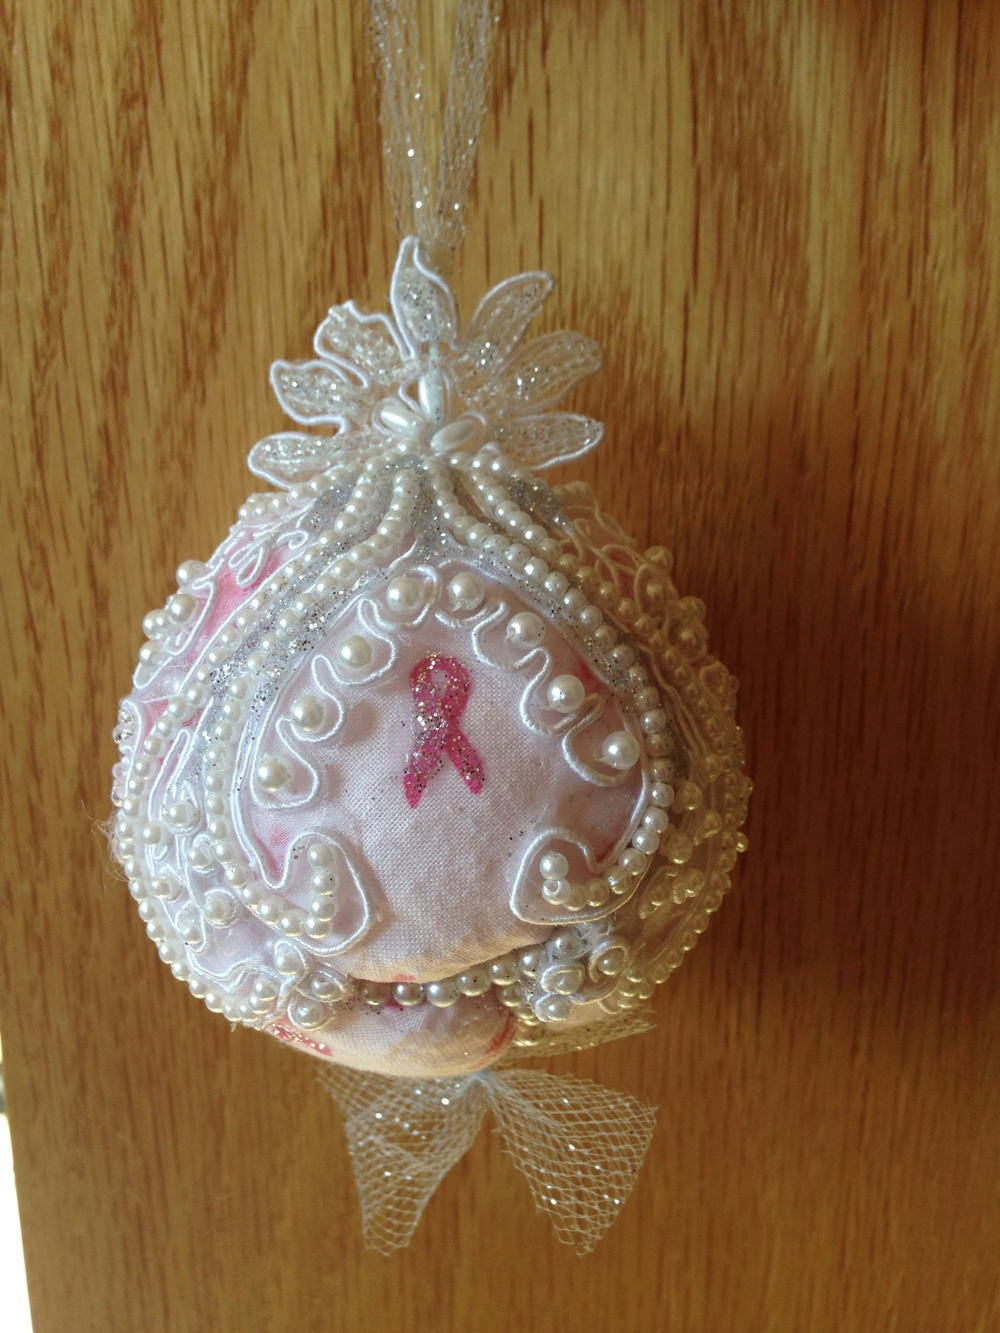 Breast Cancer Survivor DIY Ornament